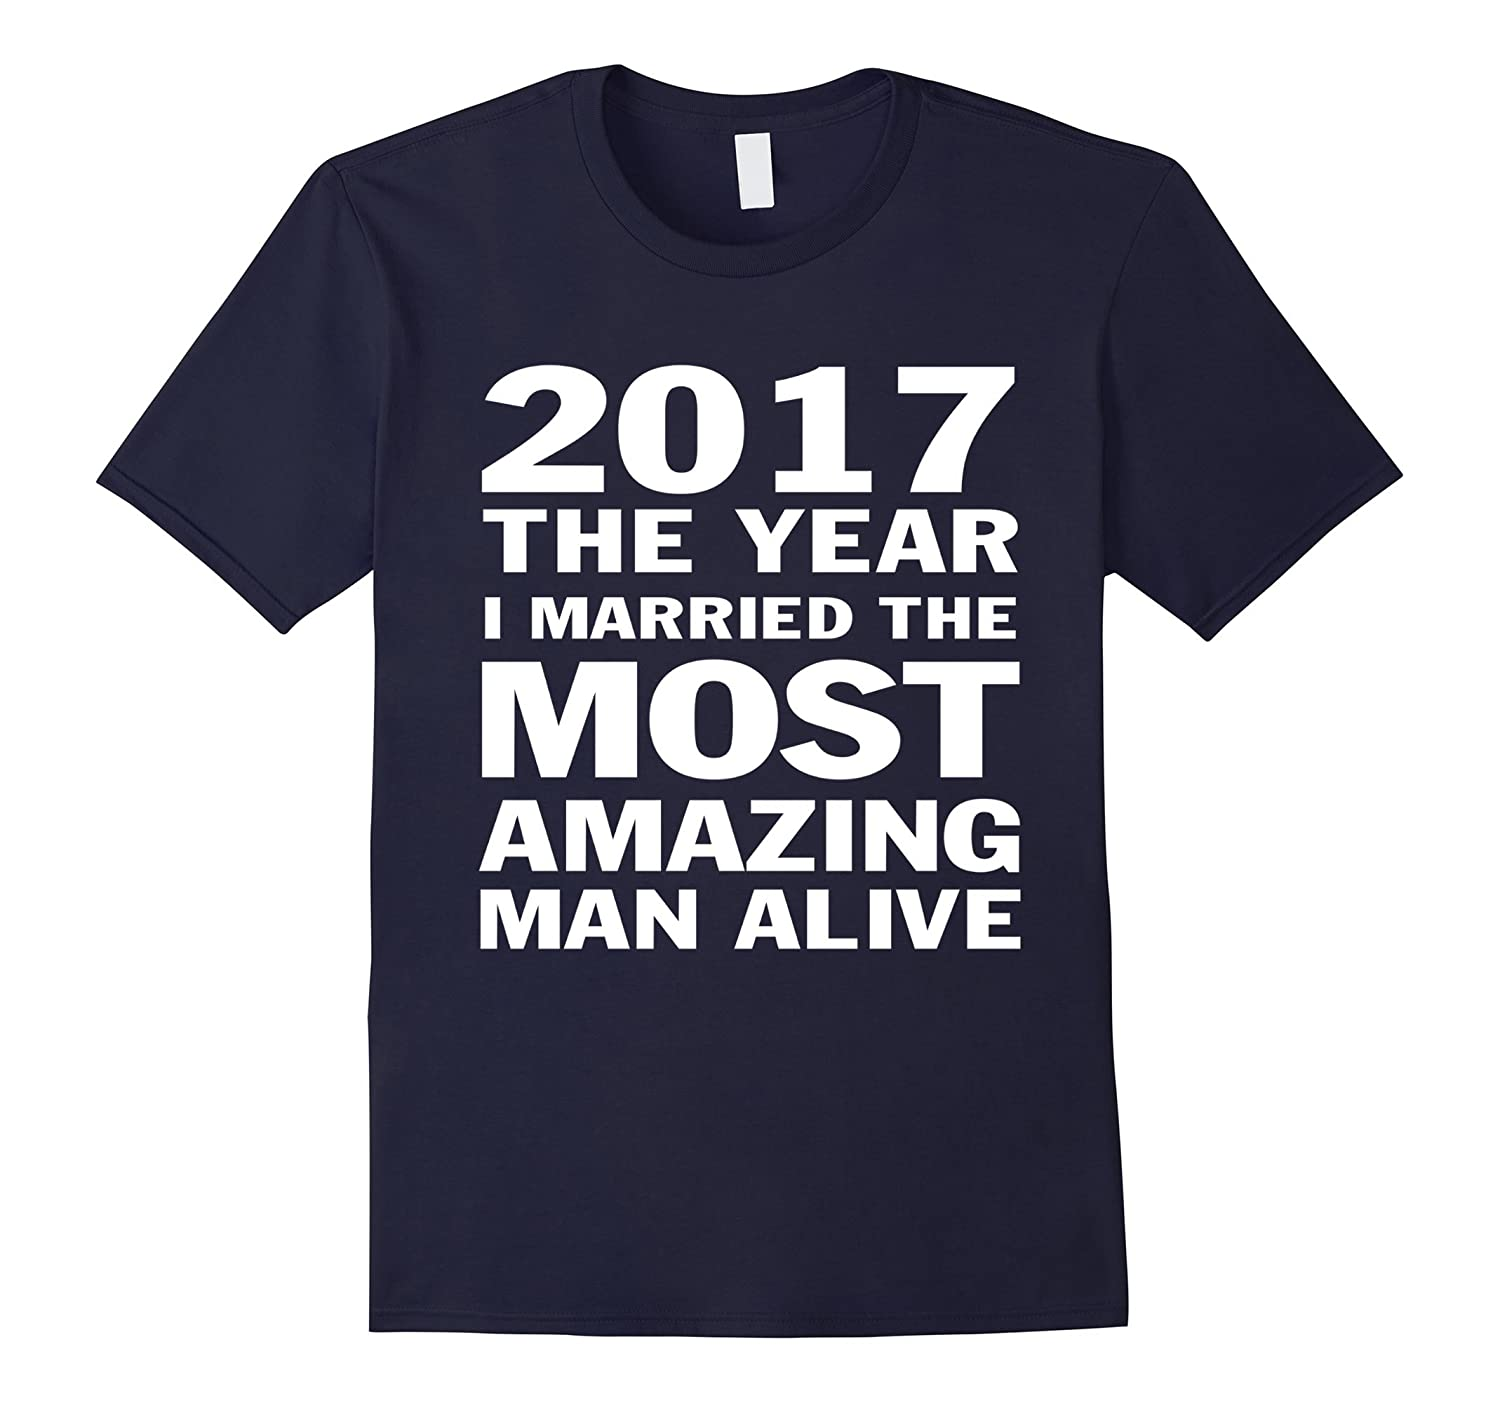 2017 the year i married the most amazing man alive tshirt-4LVS